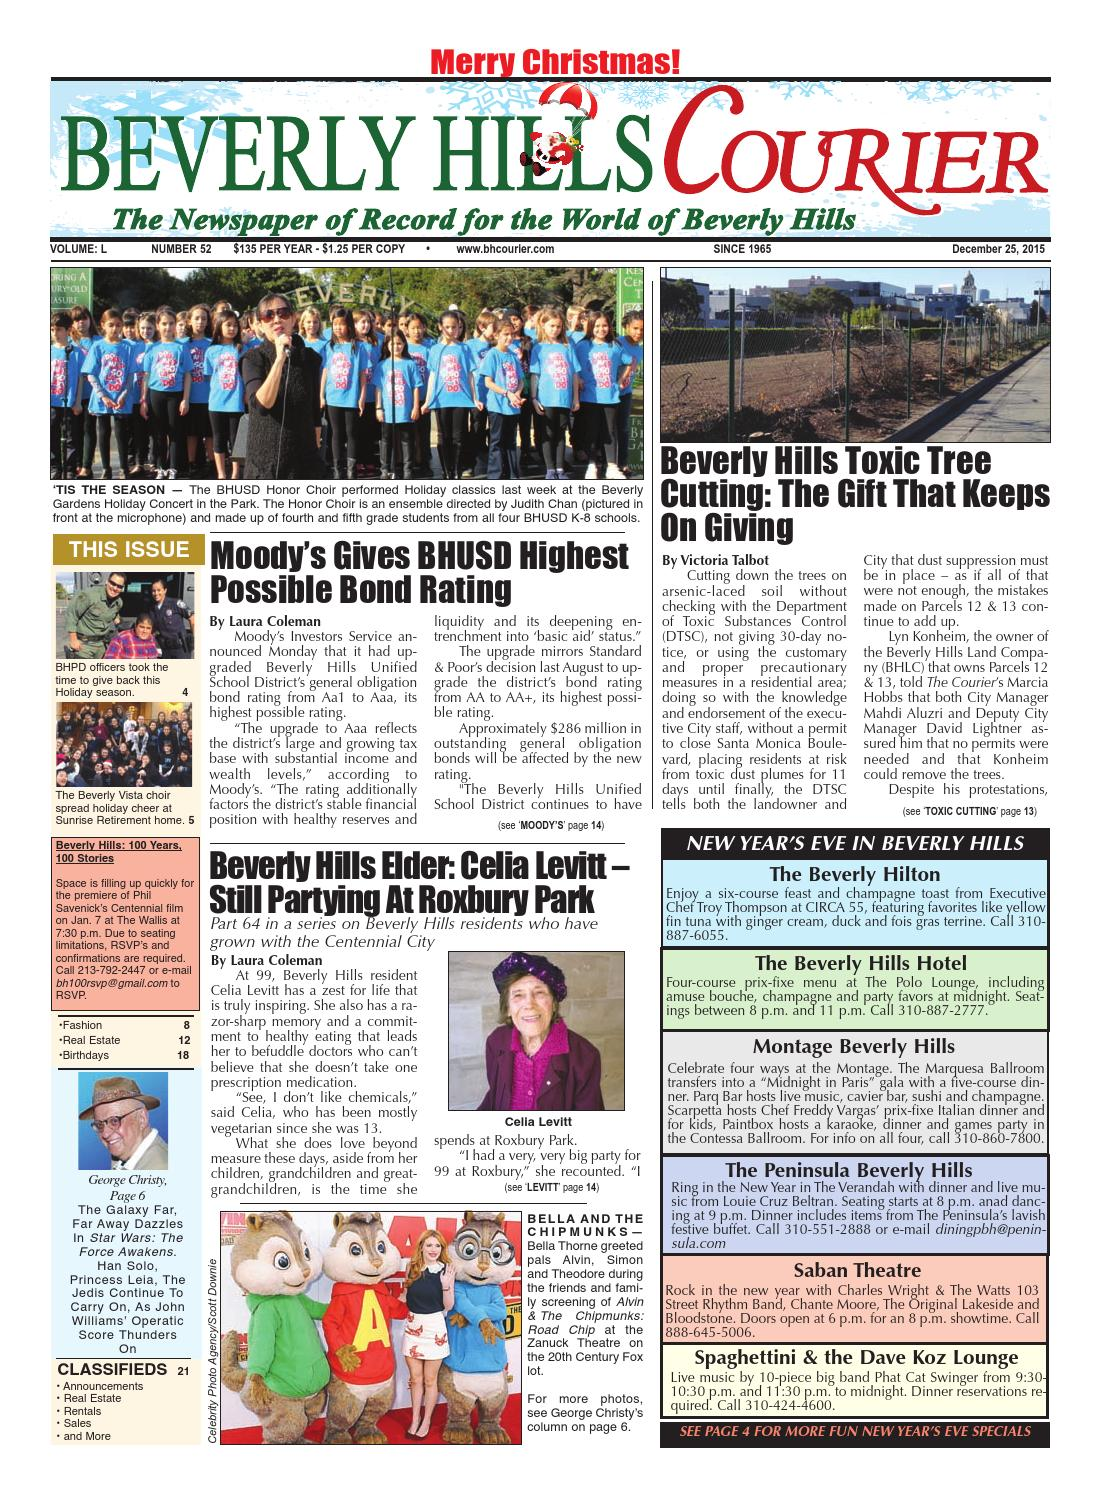 bf670821f08a6 BHCourier E-edition 122515 by The Beverly Hills Courier - issuu